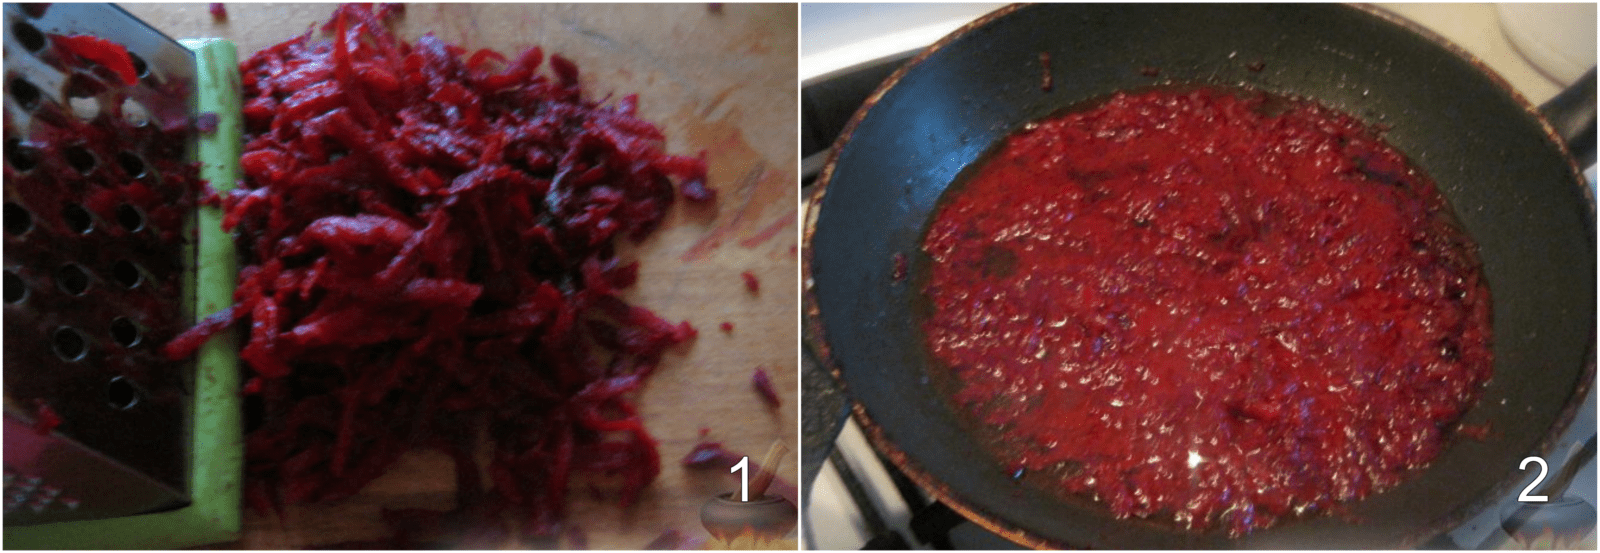 Peel and cook beets